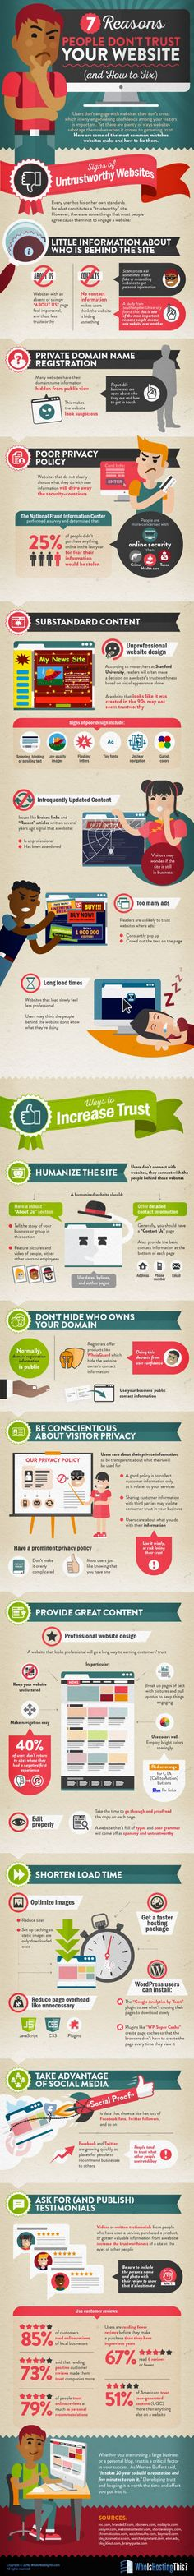 7 Reasons People Don't Trust Your Website (And How to Fix It) #Infographic